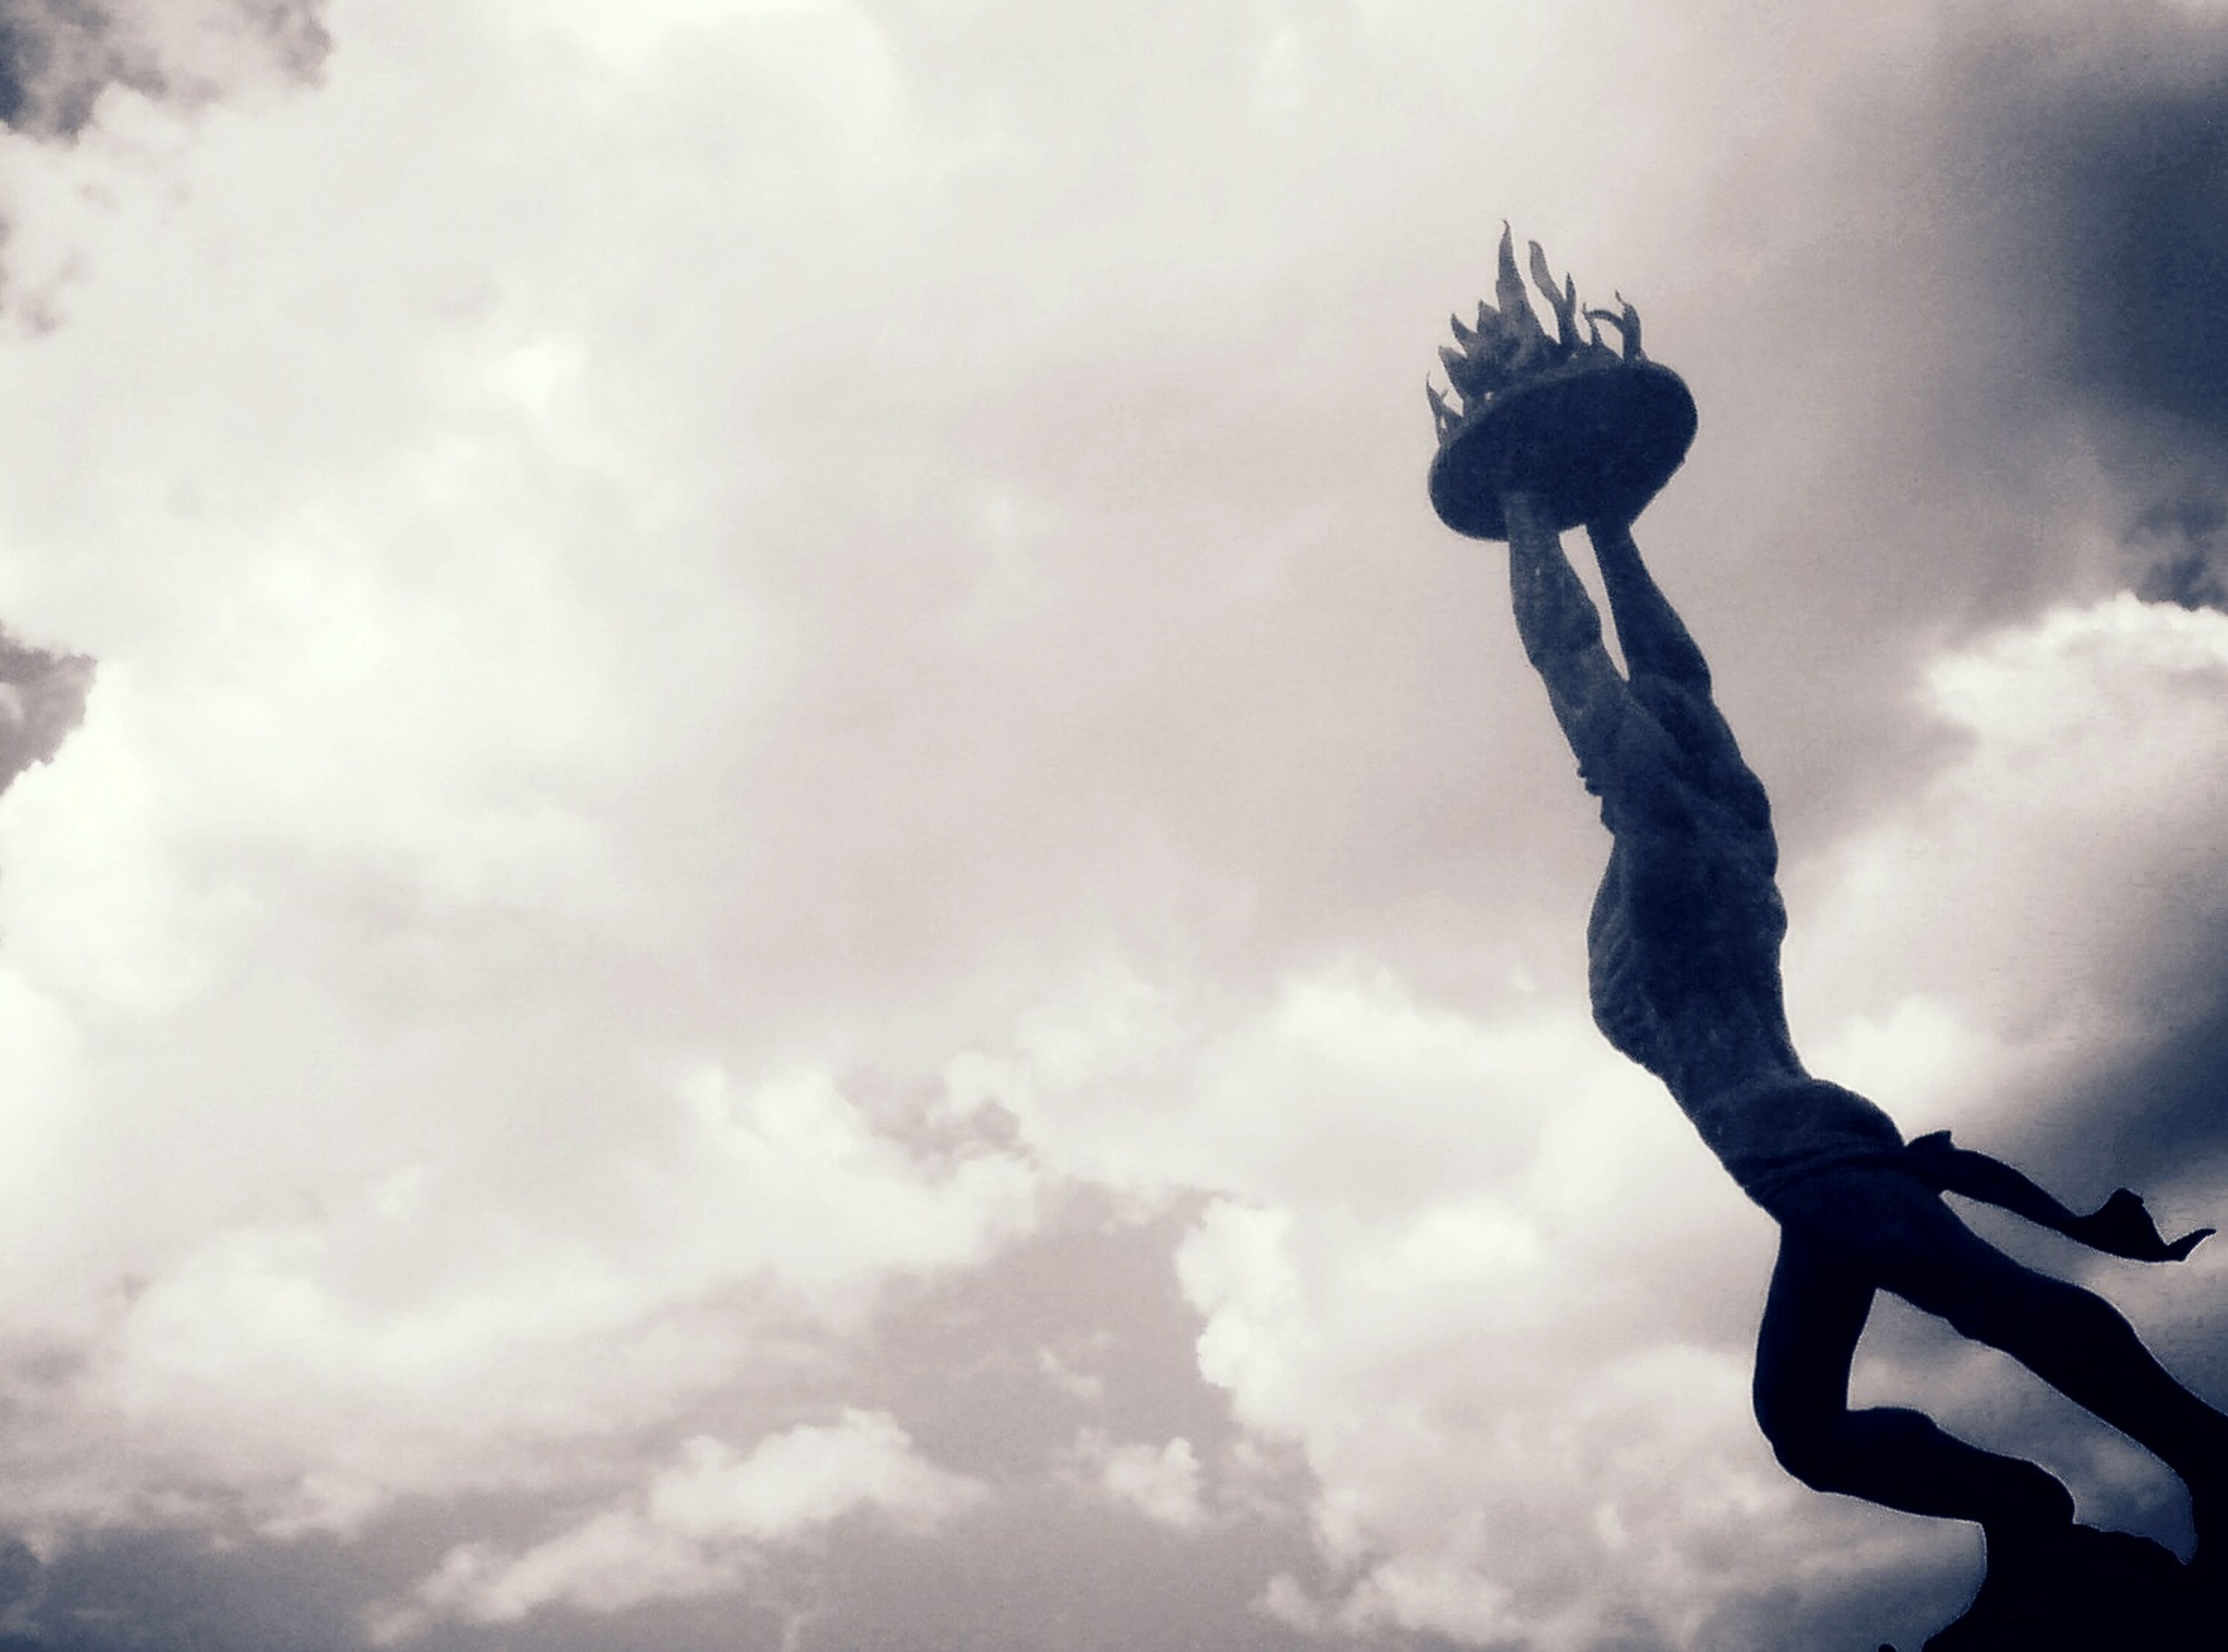 low angle view, sky, cloud - sky, cloudy, statue, human representation, sculpture, cloud, art, art and craft, creativity, silhouette, overcast, weather, day, outdoors, nature, one person